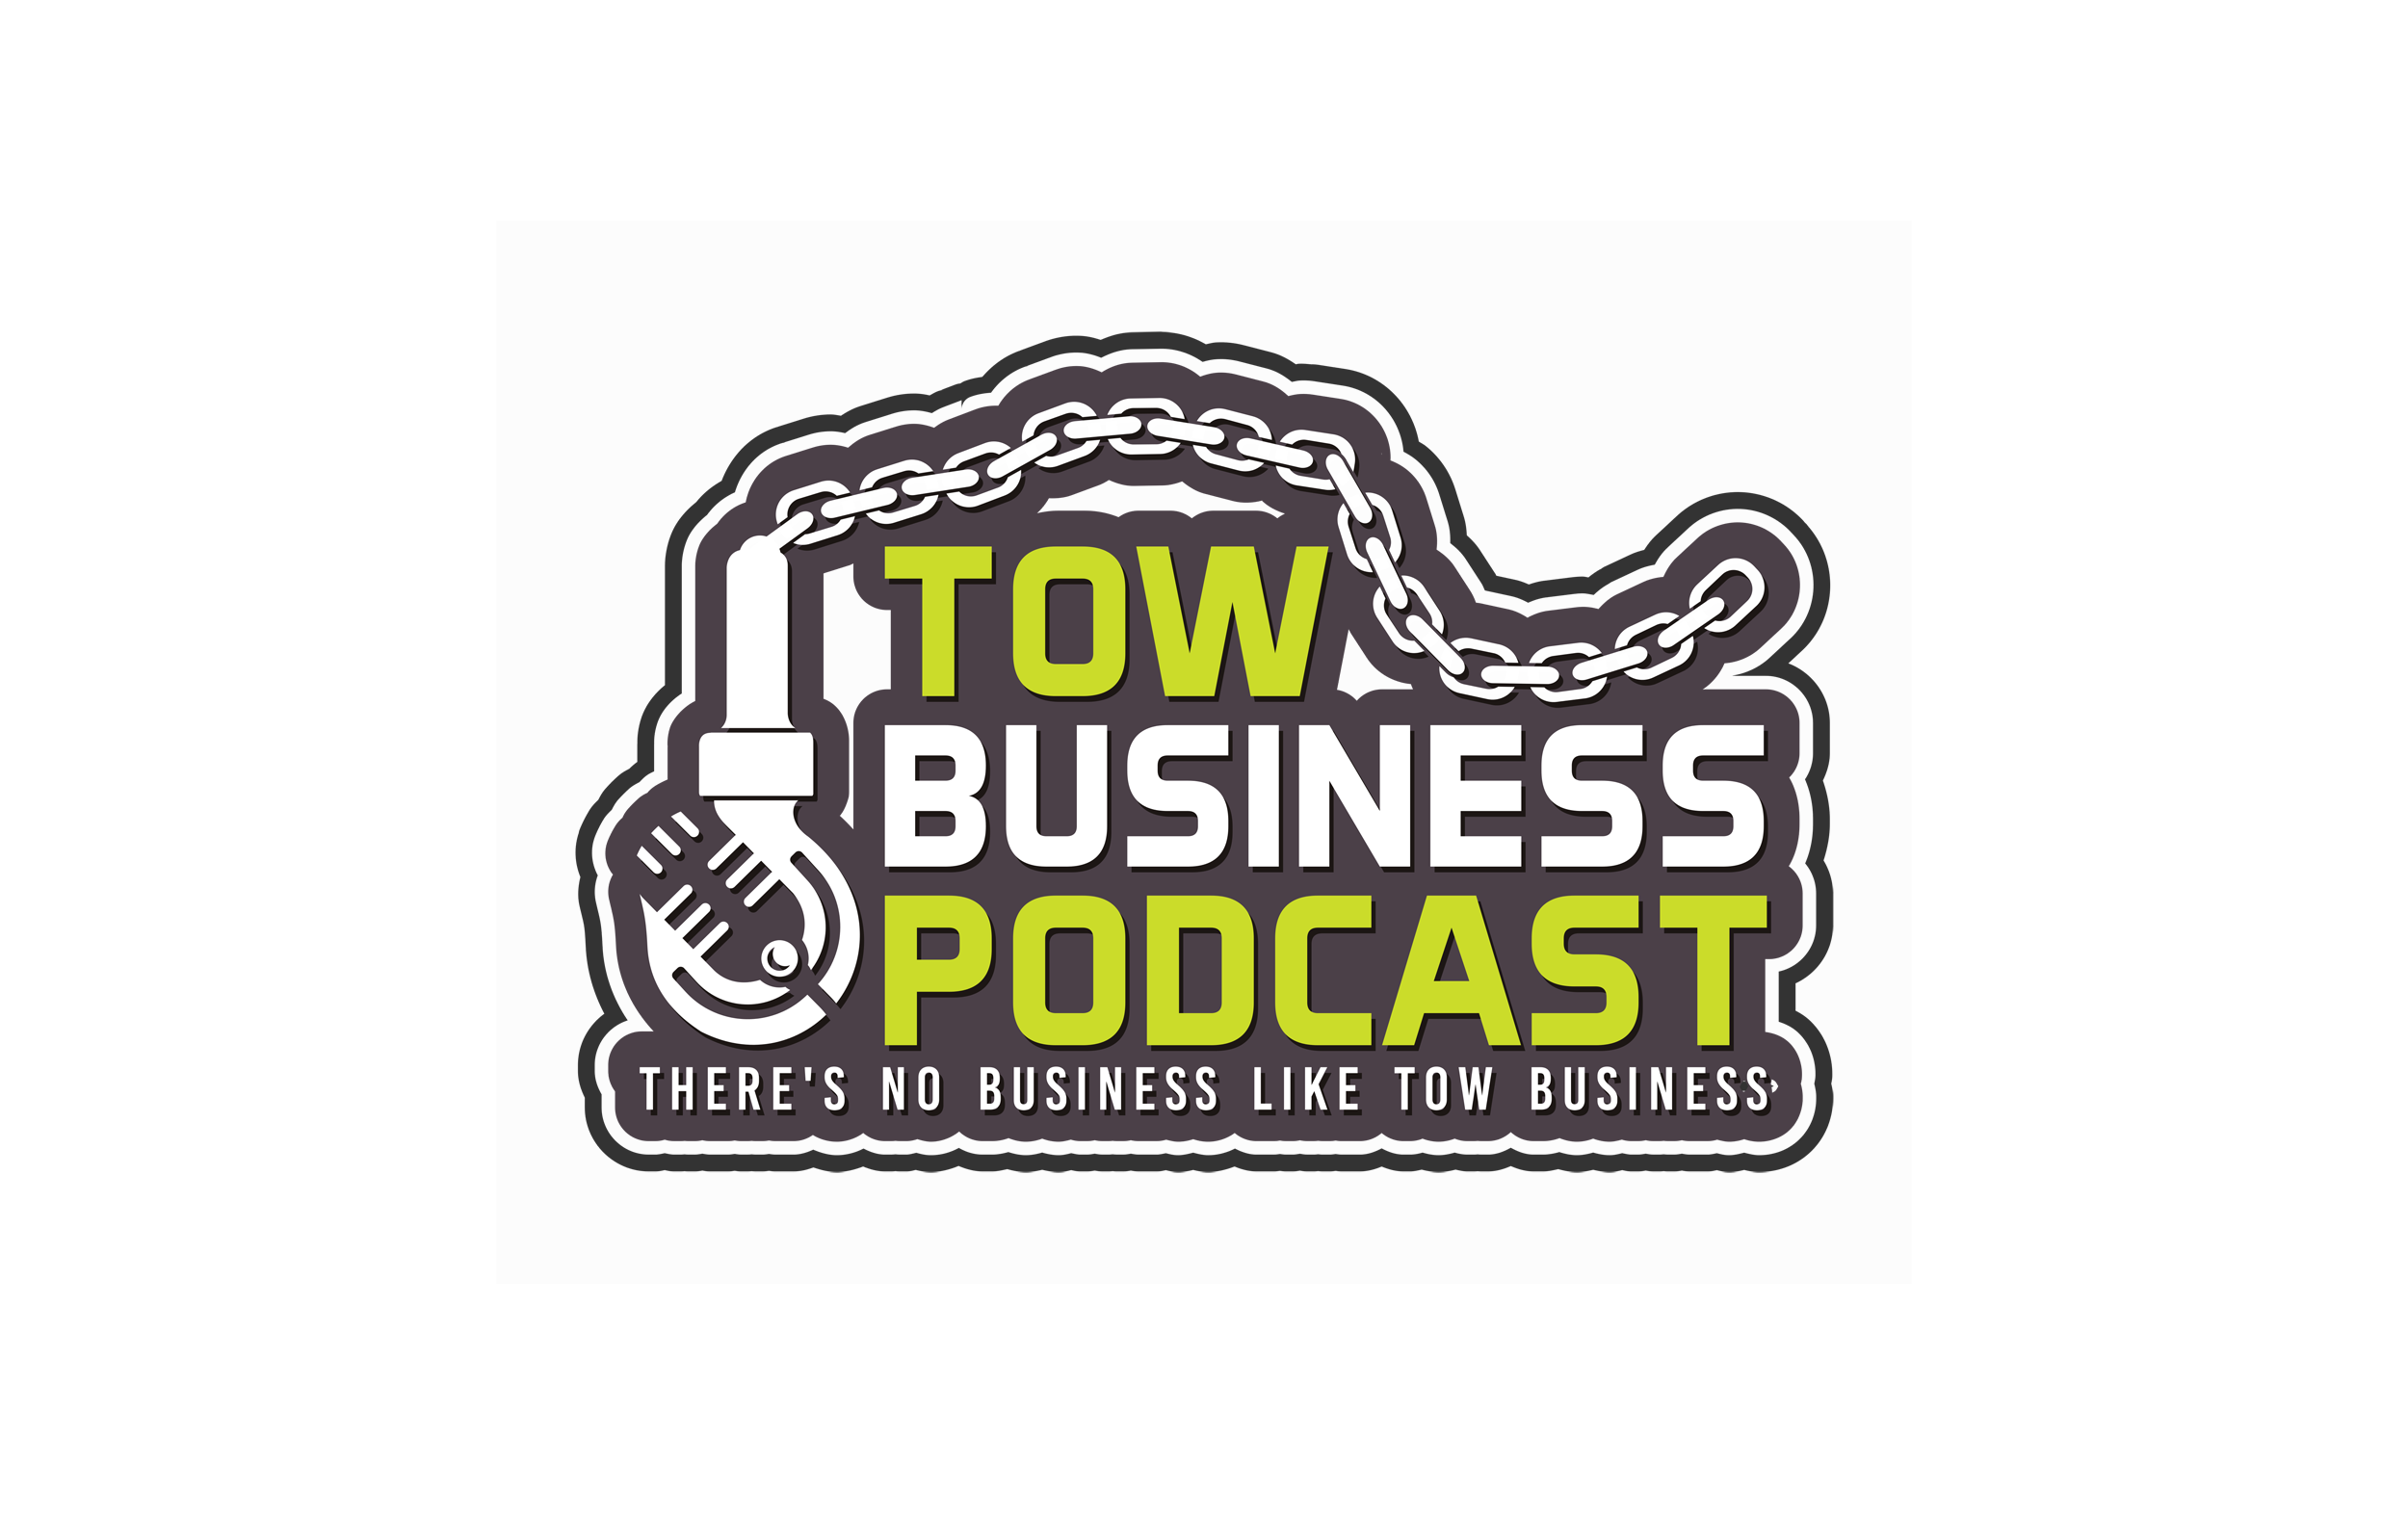 Tow Business Podcast podcast show image